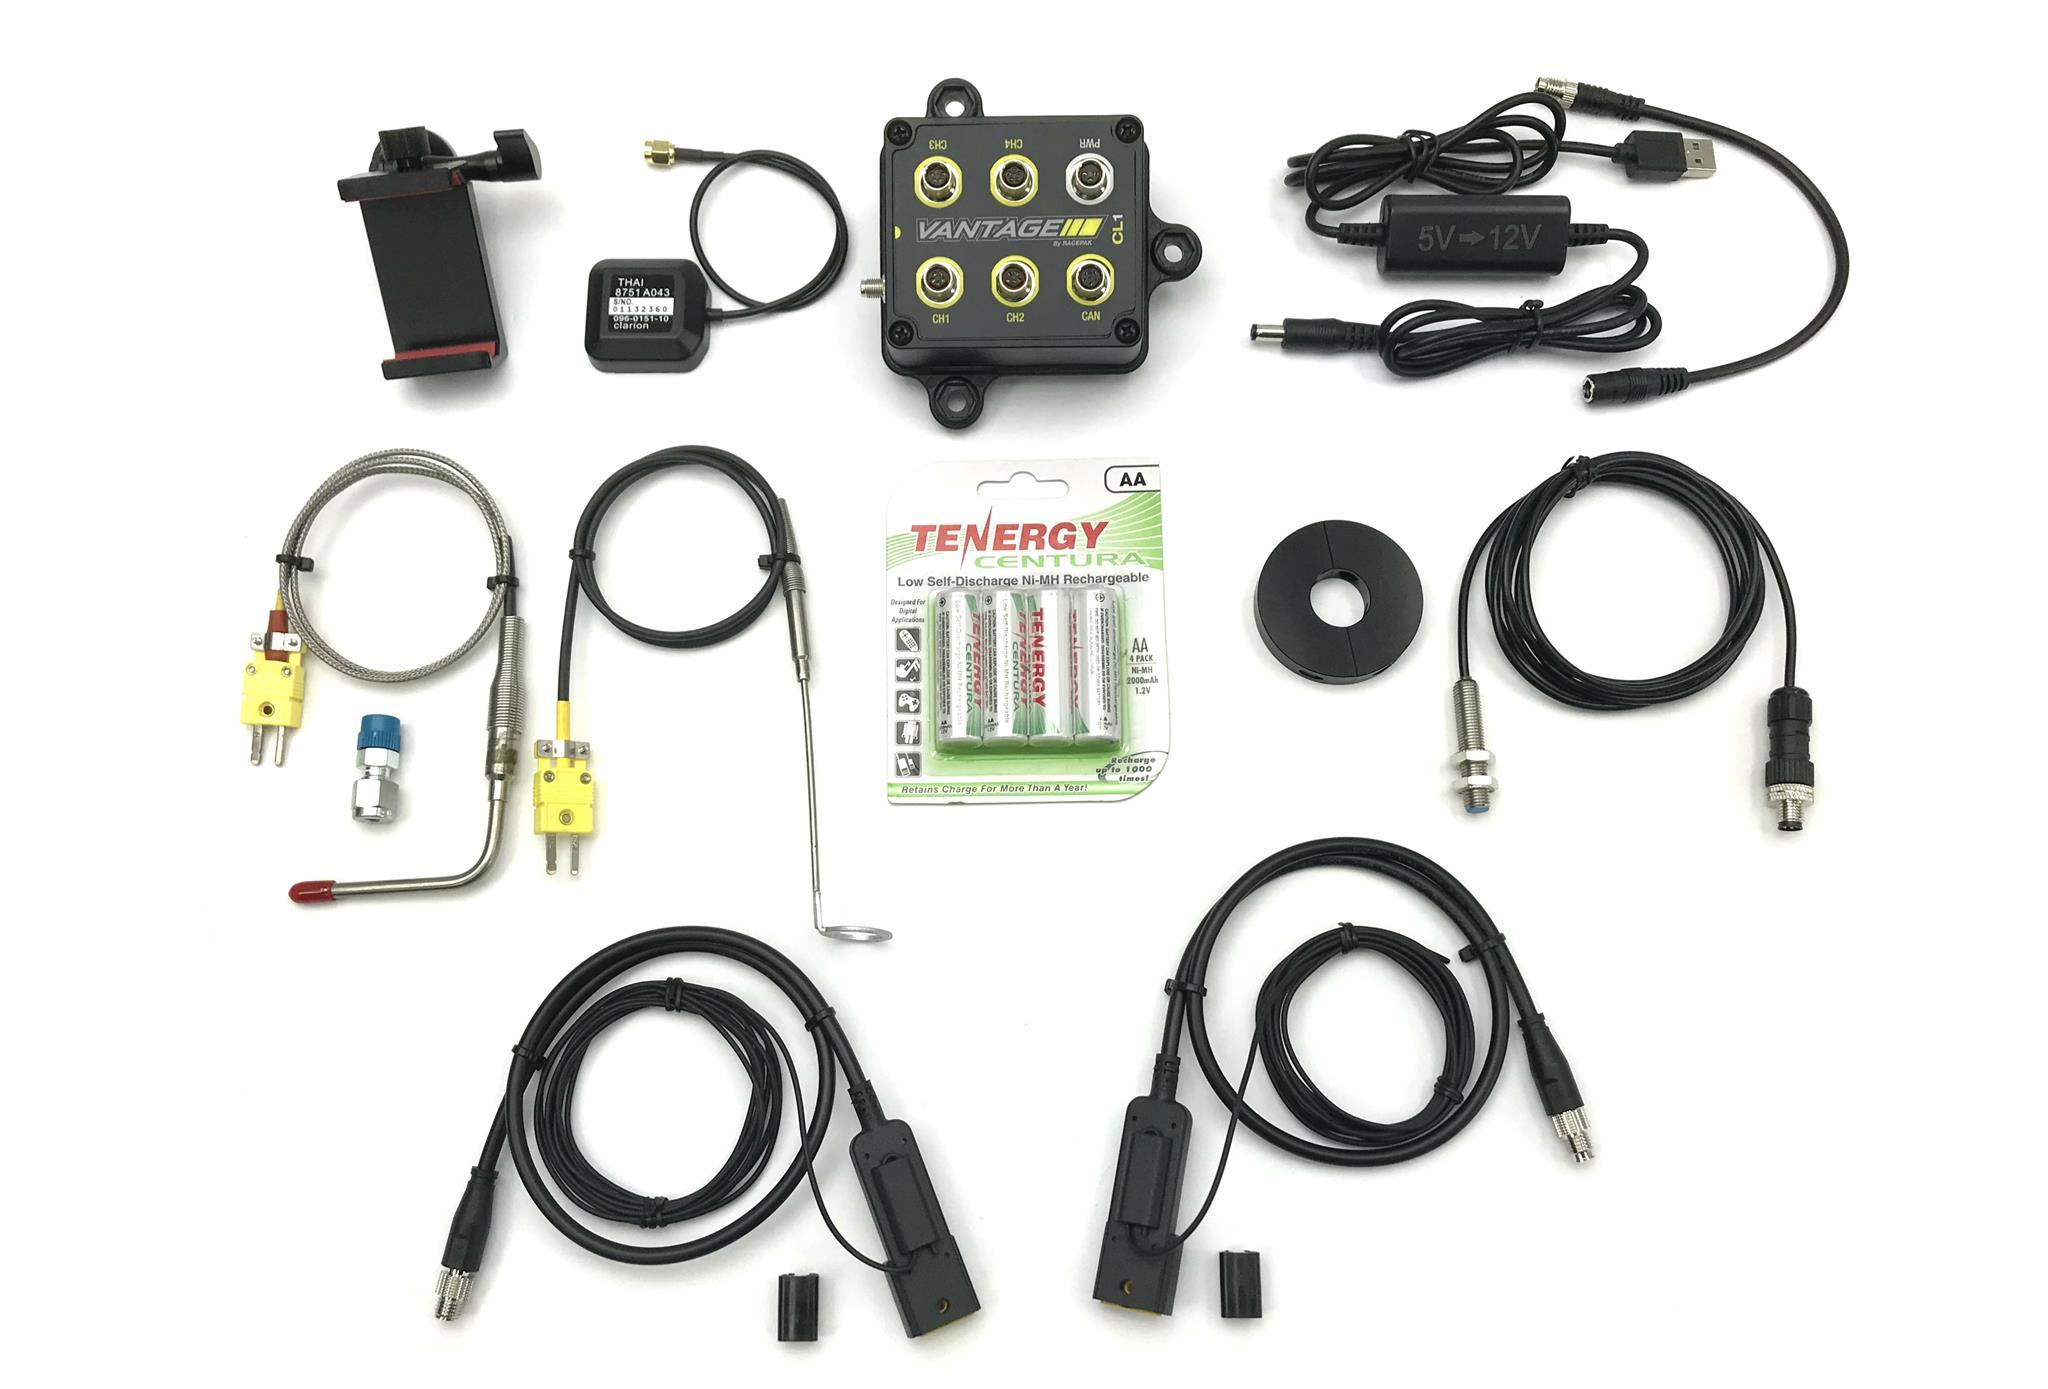 Racepak 20100-2003 Data Logger, Vantage CL1, D3 Jr Dragster App, Kit